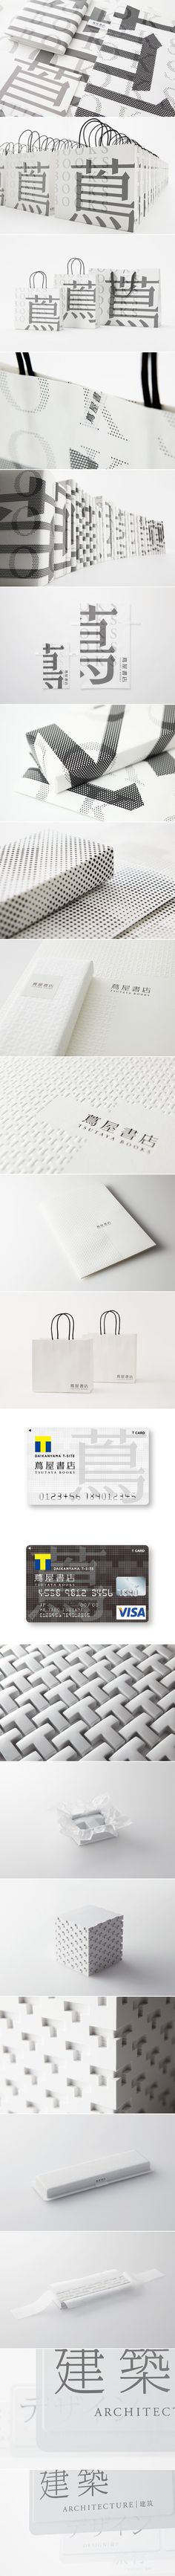 branding + packaging | Tsutaya Shoten Bookstore, Japan